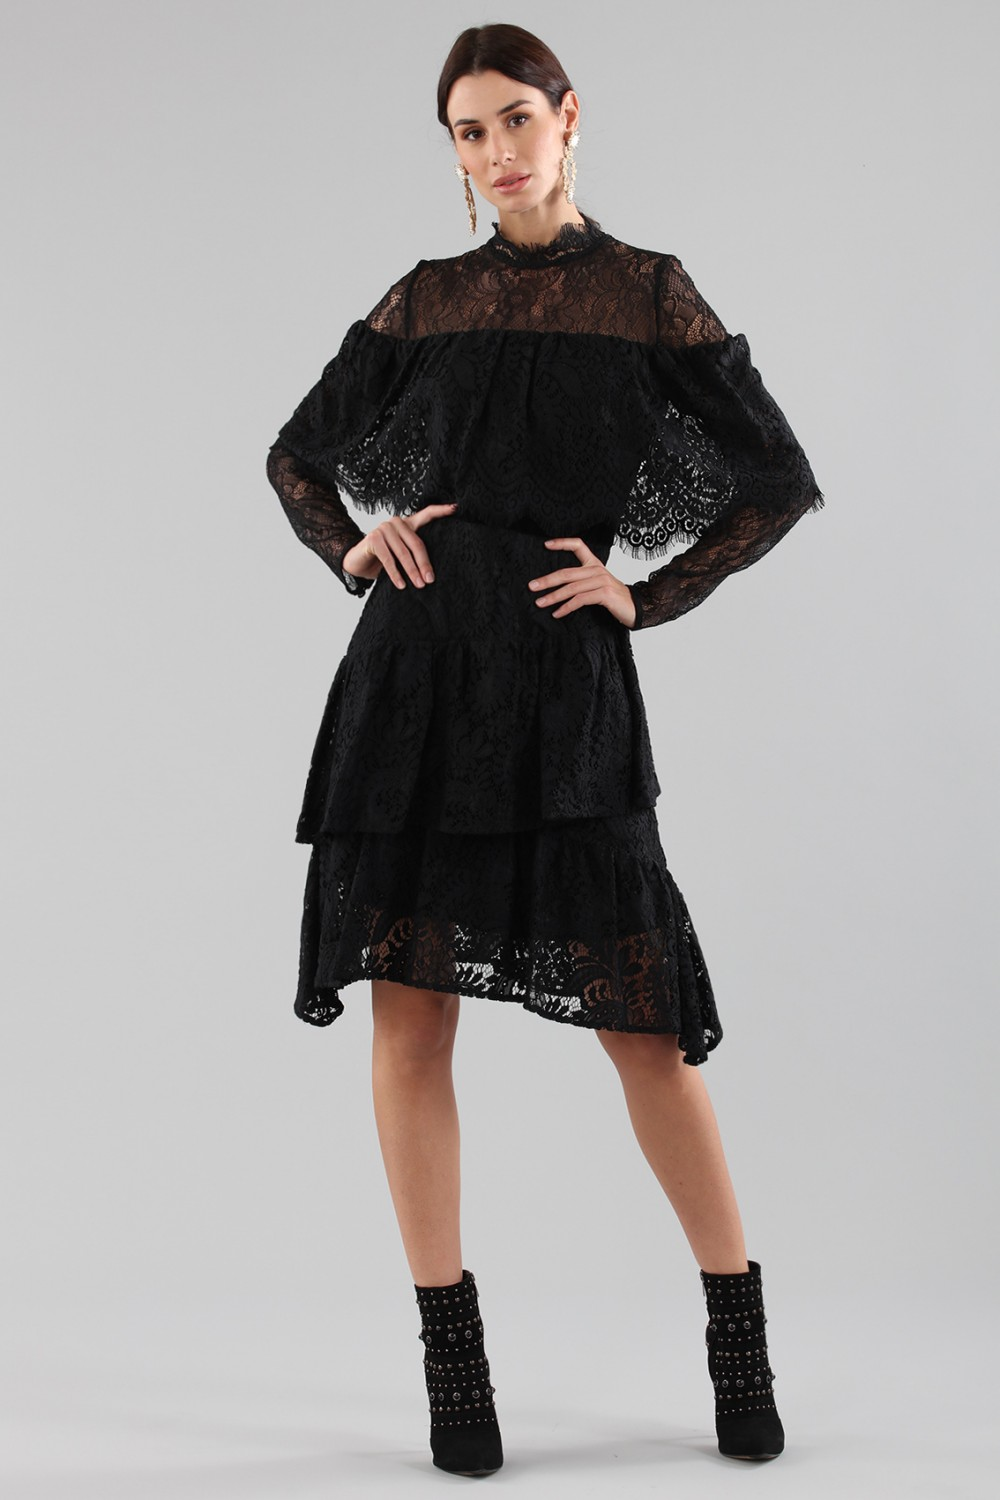 Short black dress with flounces and cape sleeves